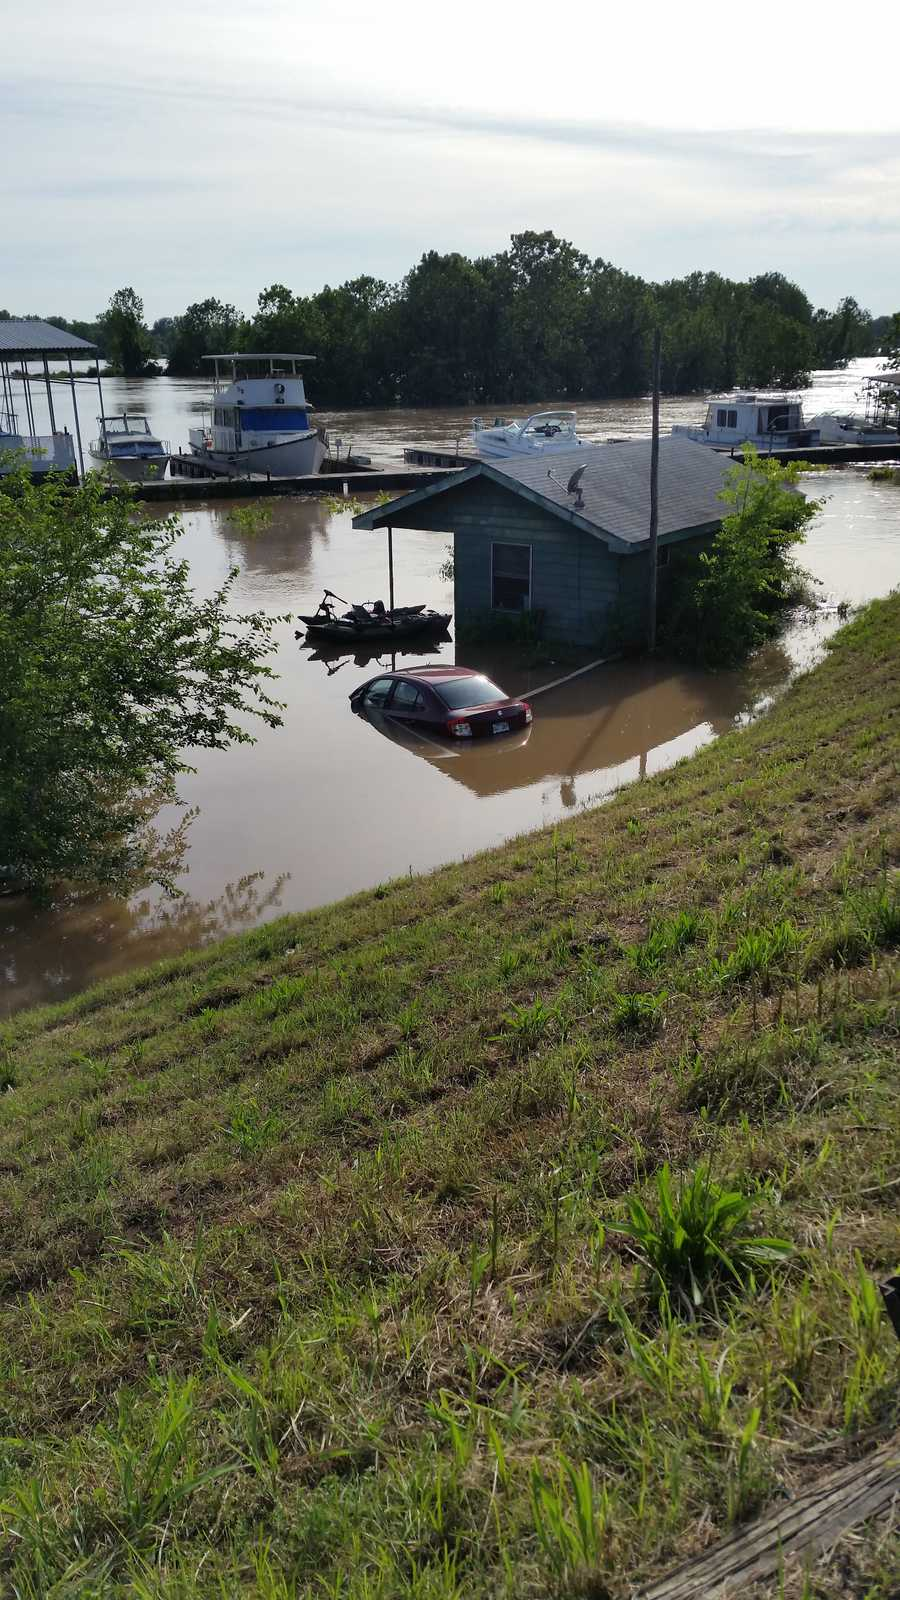 Major flooding in Van Buren